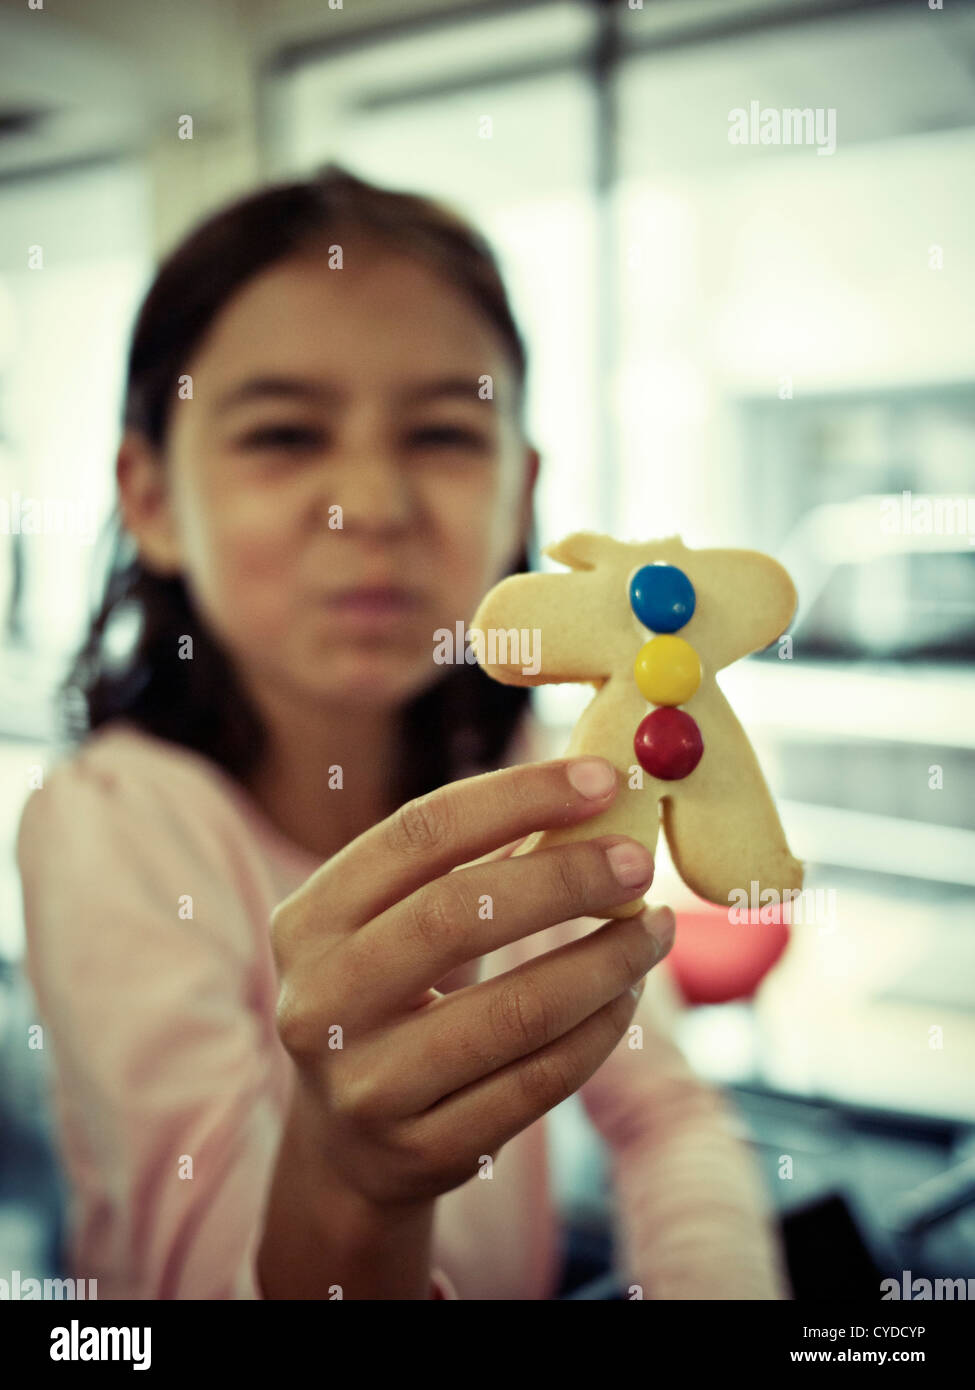 Cookie monster: 'I ate its head' - Stock Image